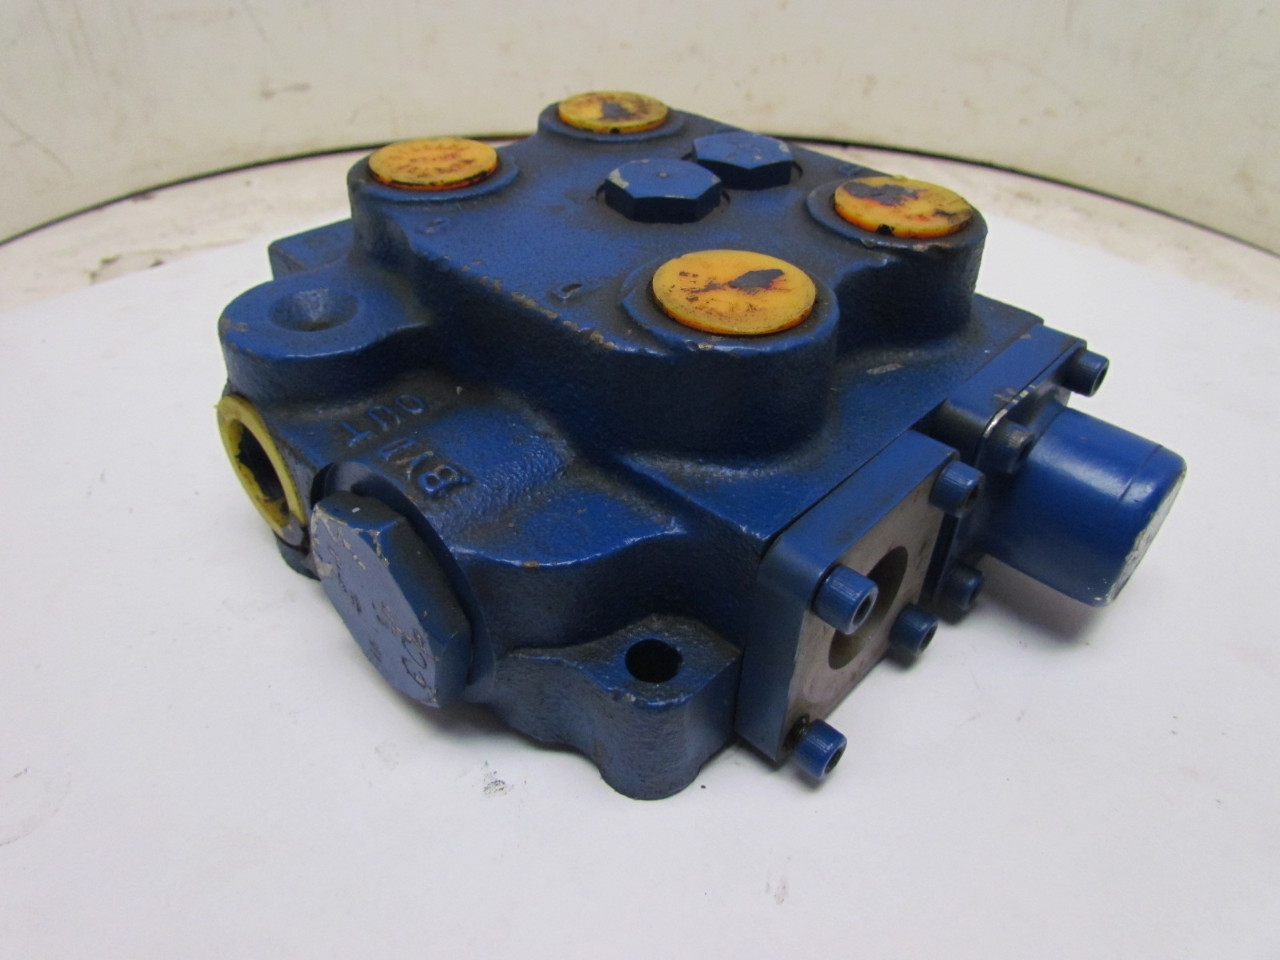 Hydraulic Valve Parts : Cross z hydraulic valve for parts or repair missing